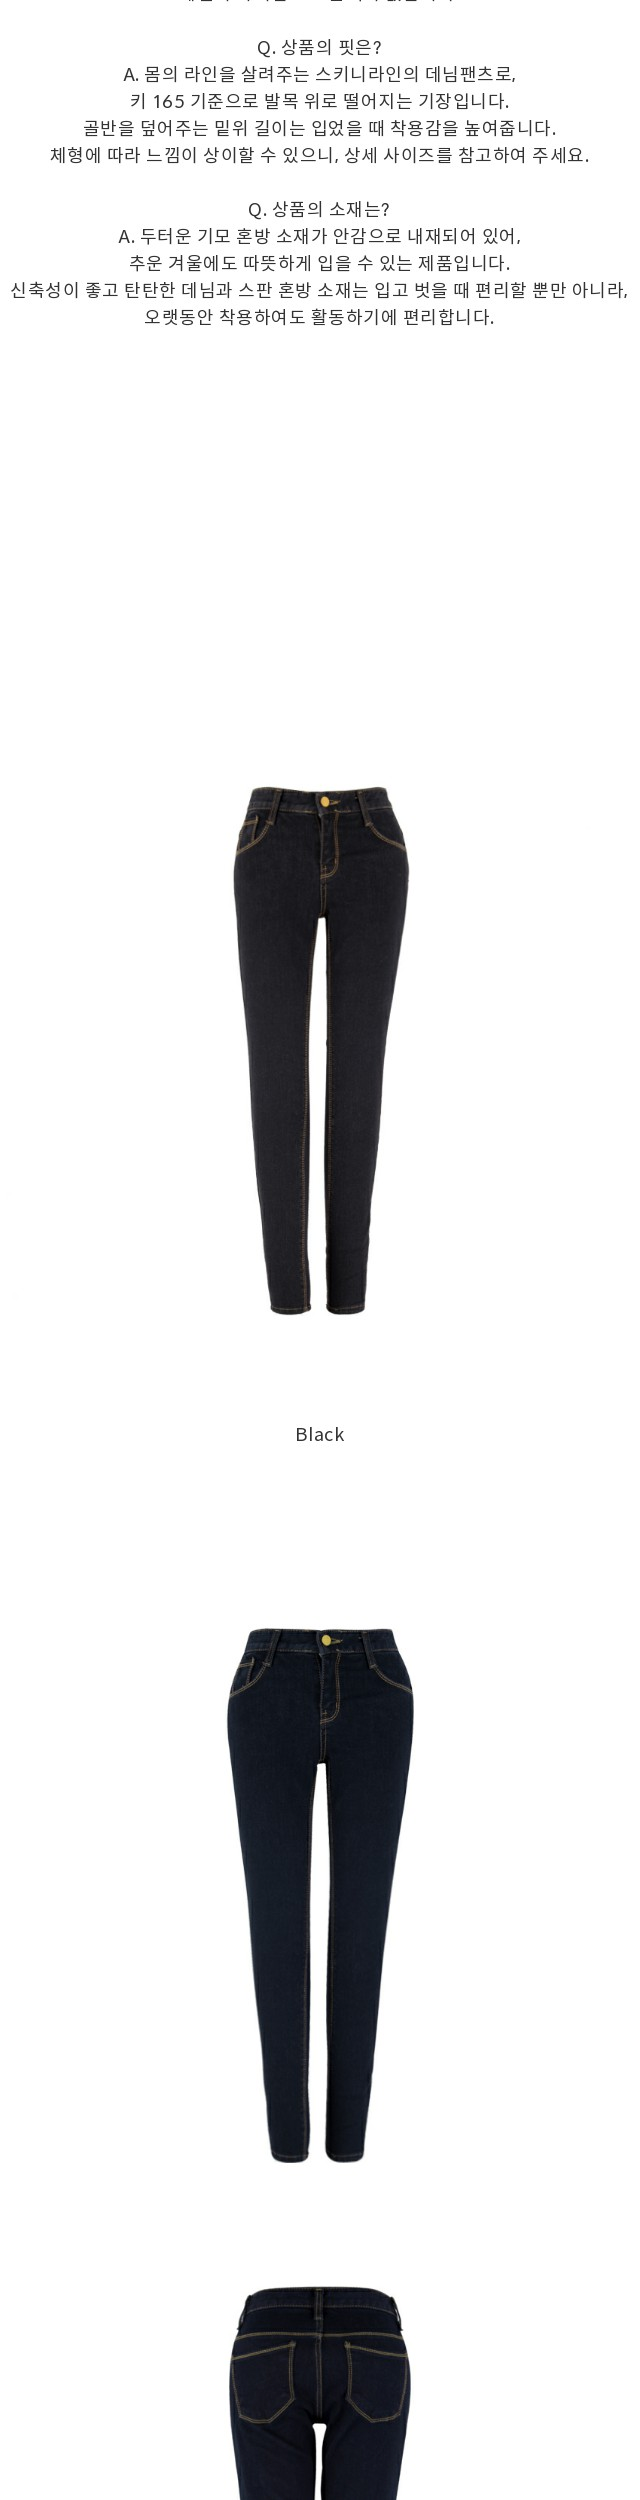 816 Rising brushed skinny jeans